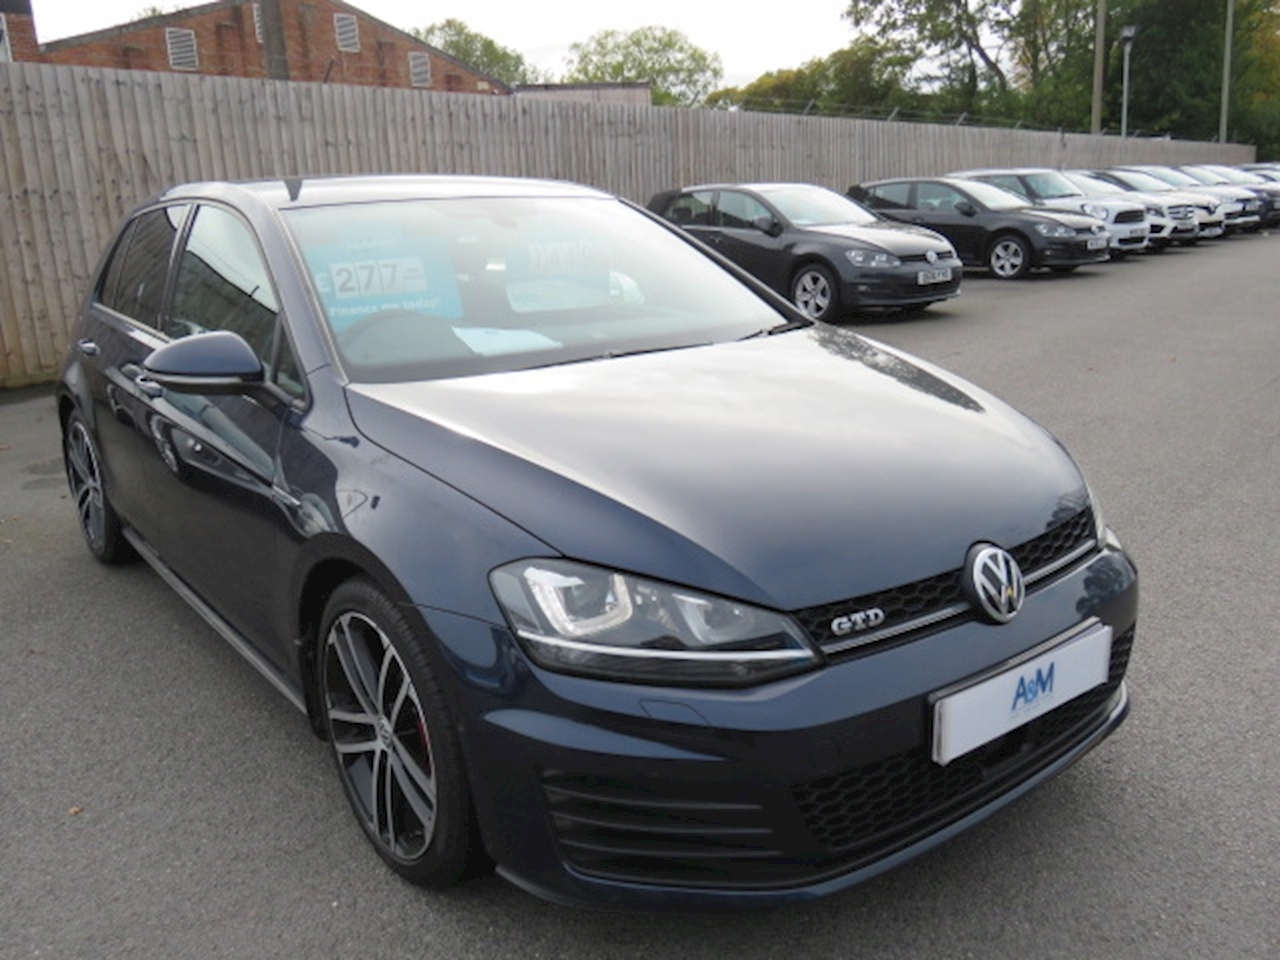 Golf GTD 2.0 5dr Hatchback Manual Diesel